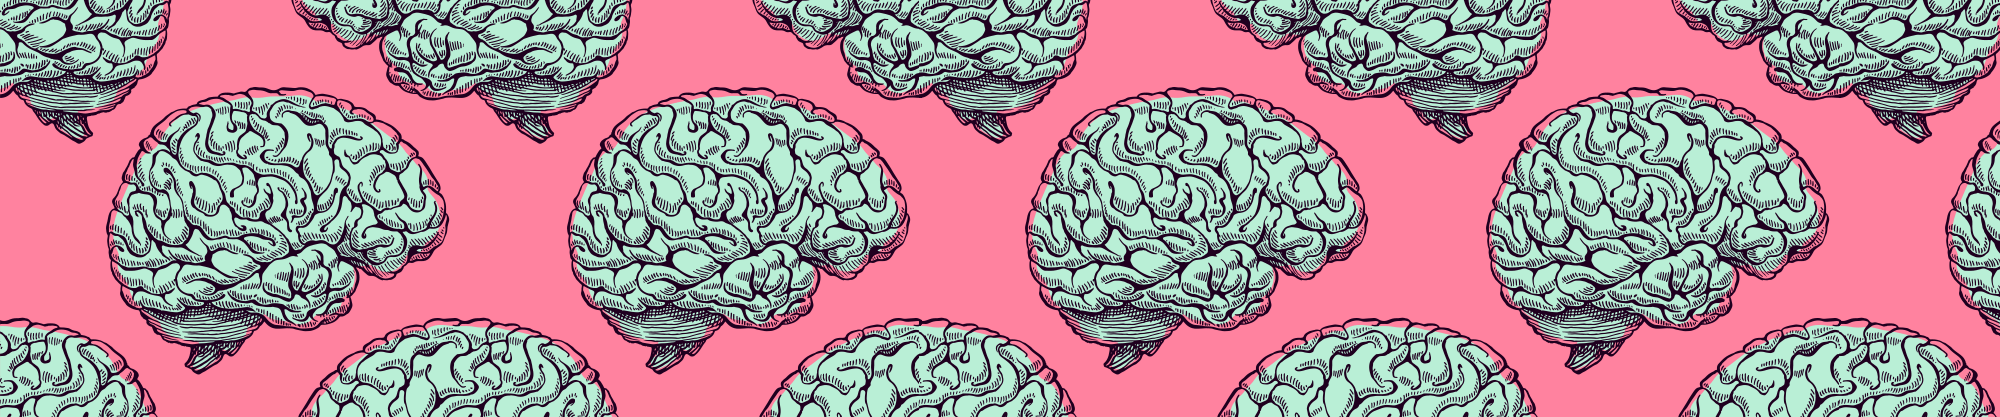 Brain Illustration Background